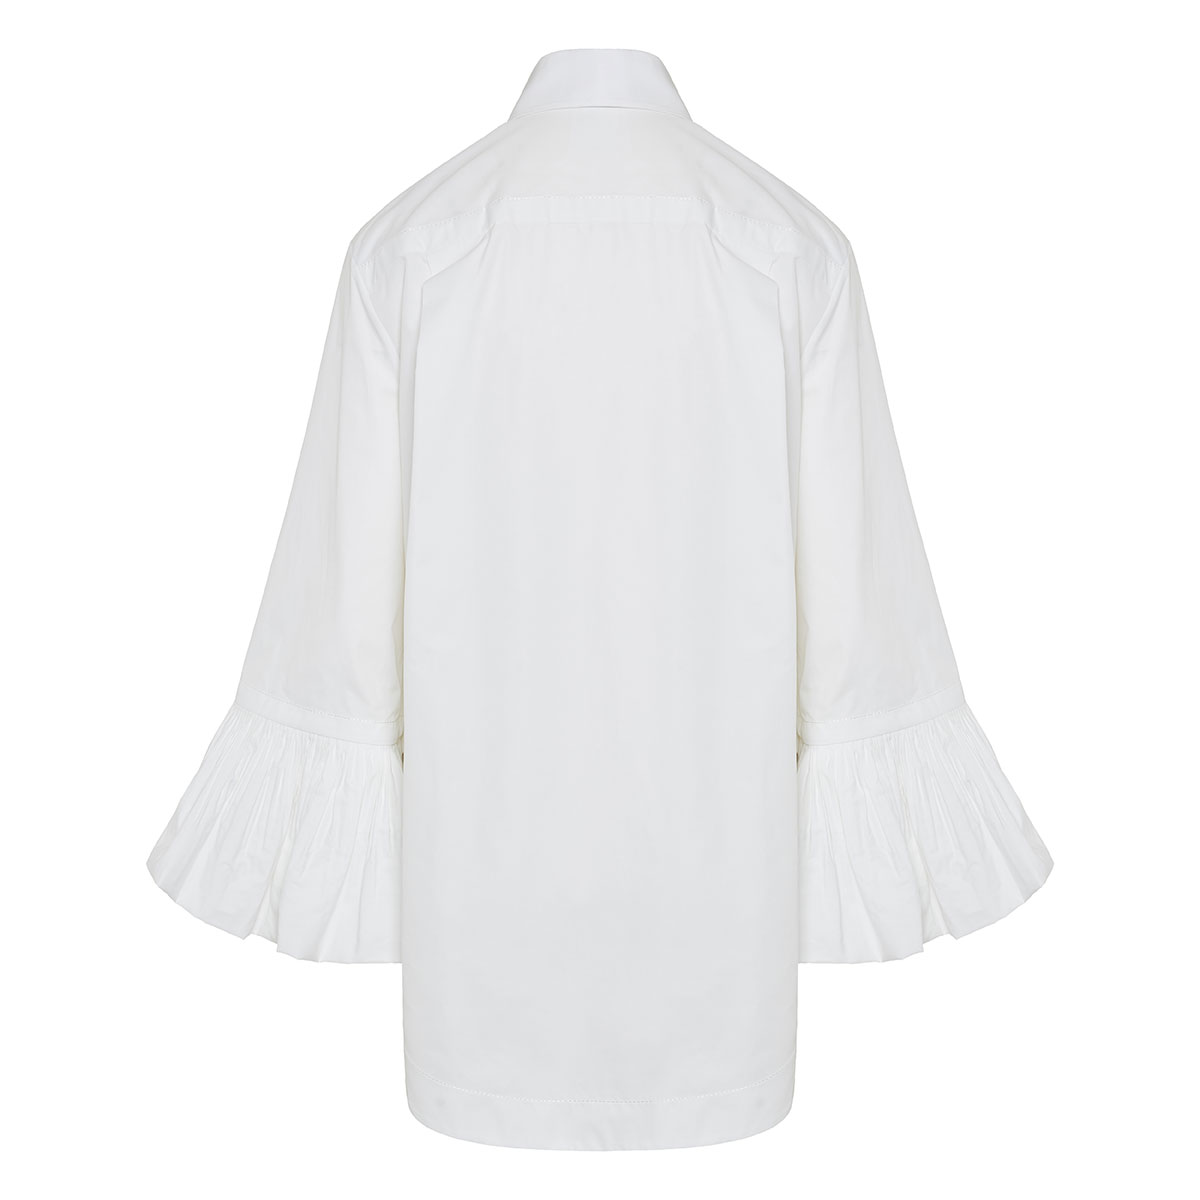 Oversized shirt with ruffled cuffs